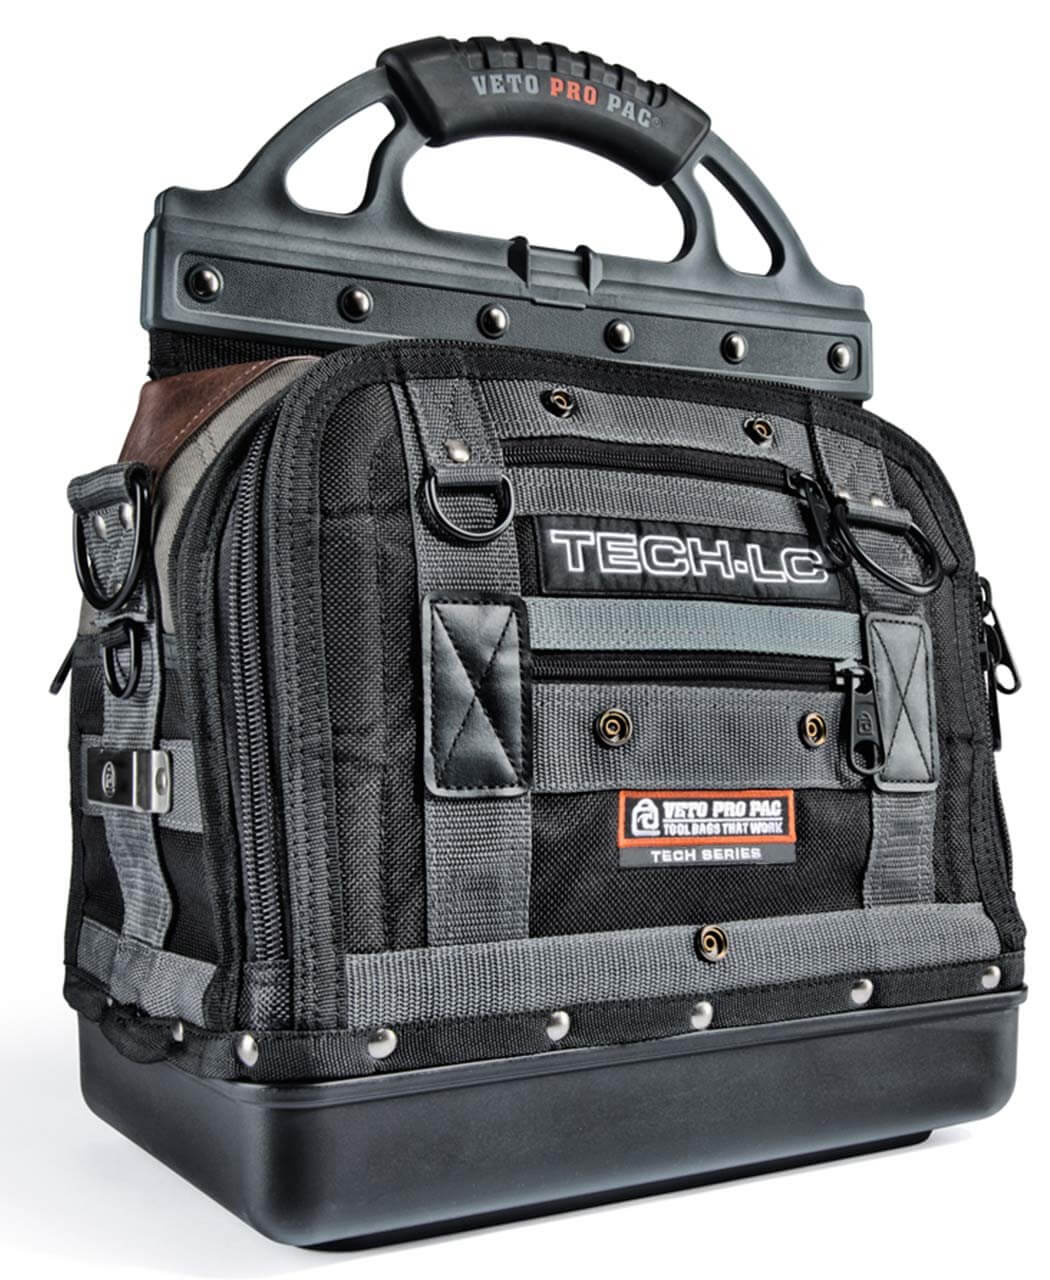 Veto Pro Pac Tech LC Tool Bag with 53 Pockets